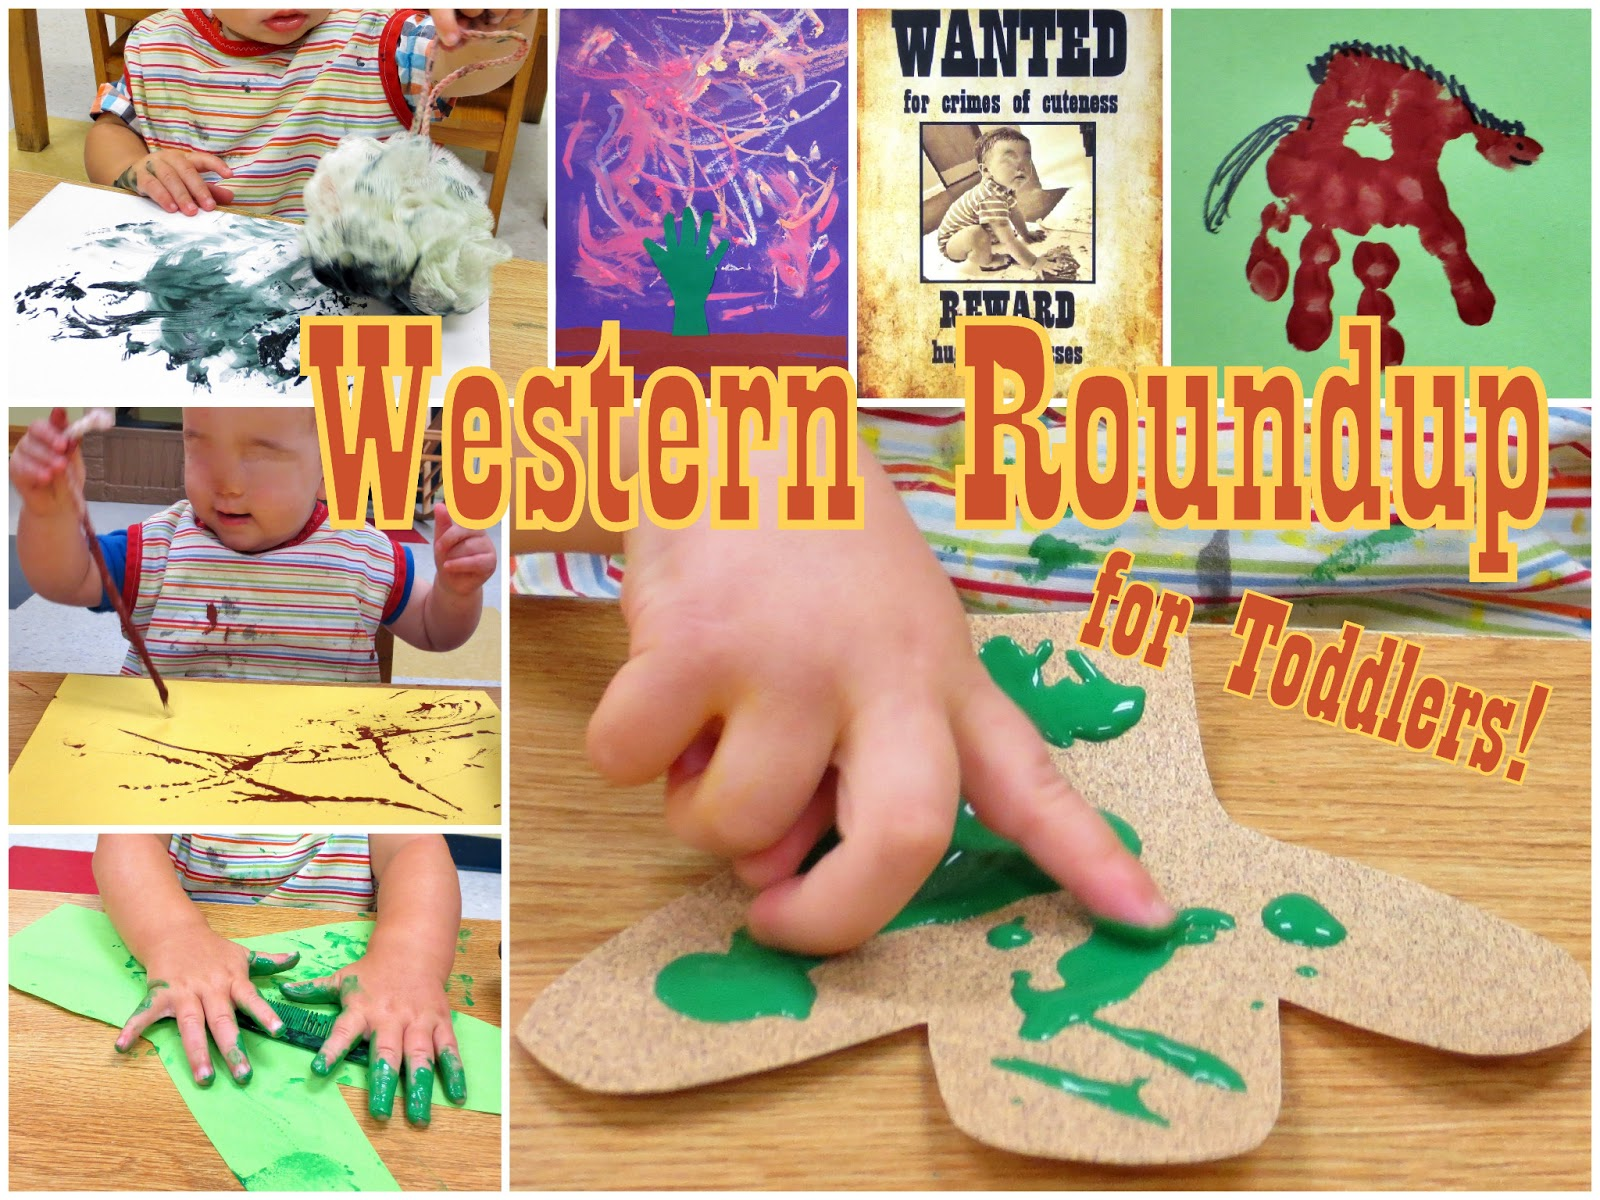 Western arts and crafts - Hool Pizzazz Western Roundup For Toddlers